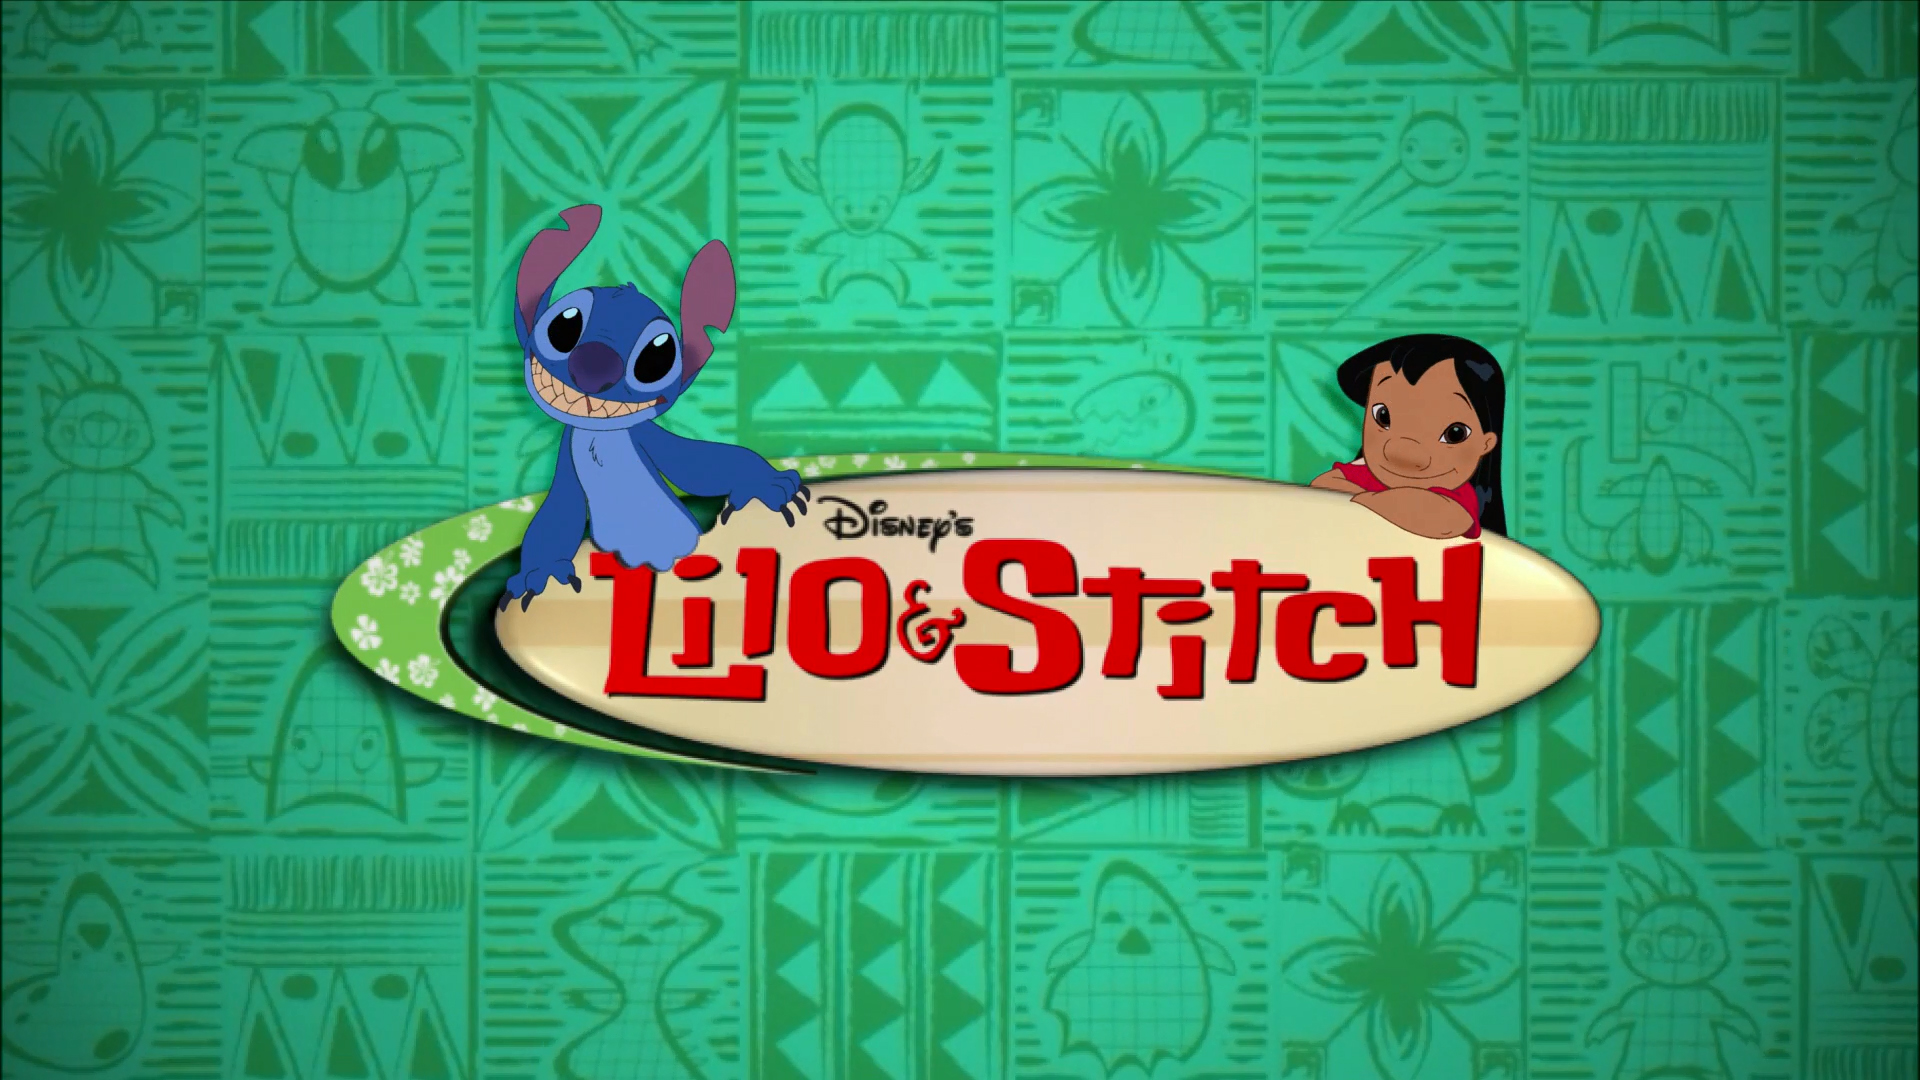 Lilo & Stitch episode list